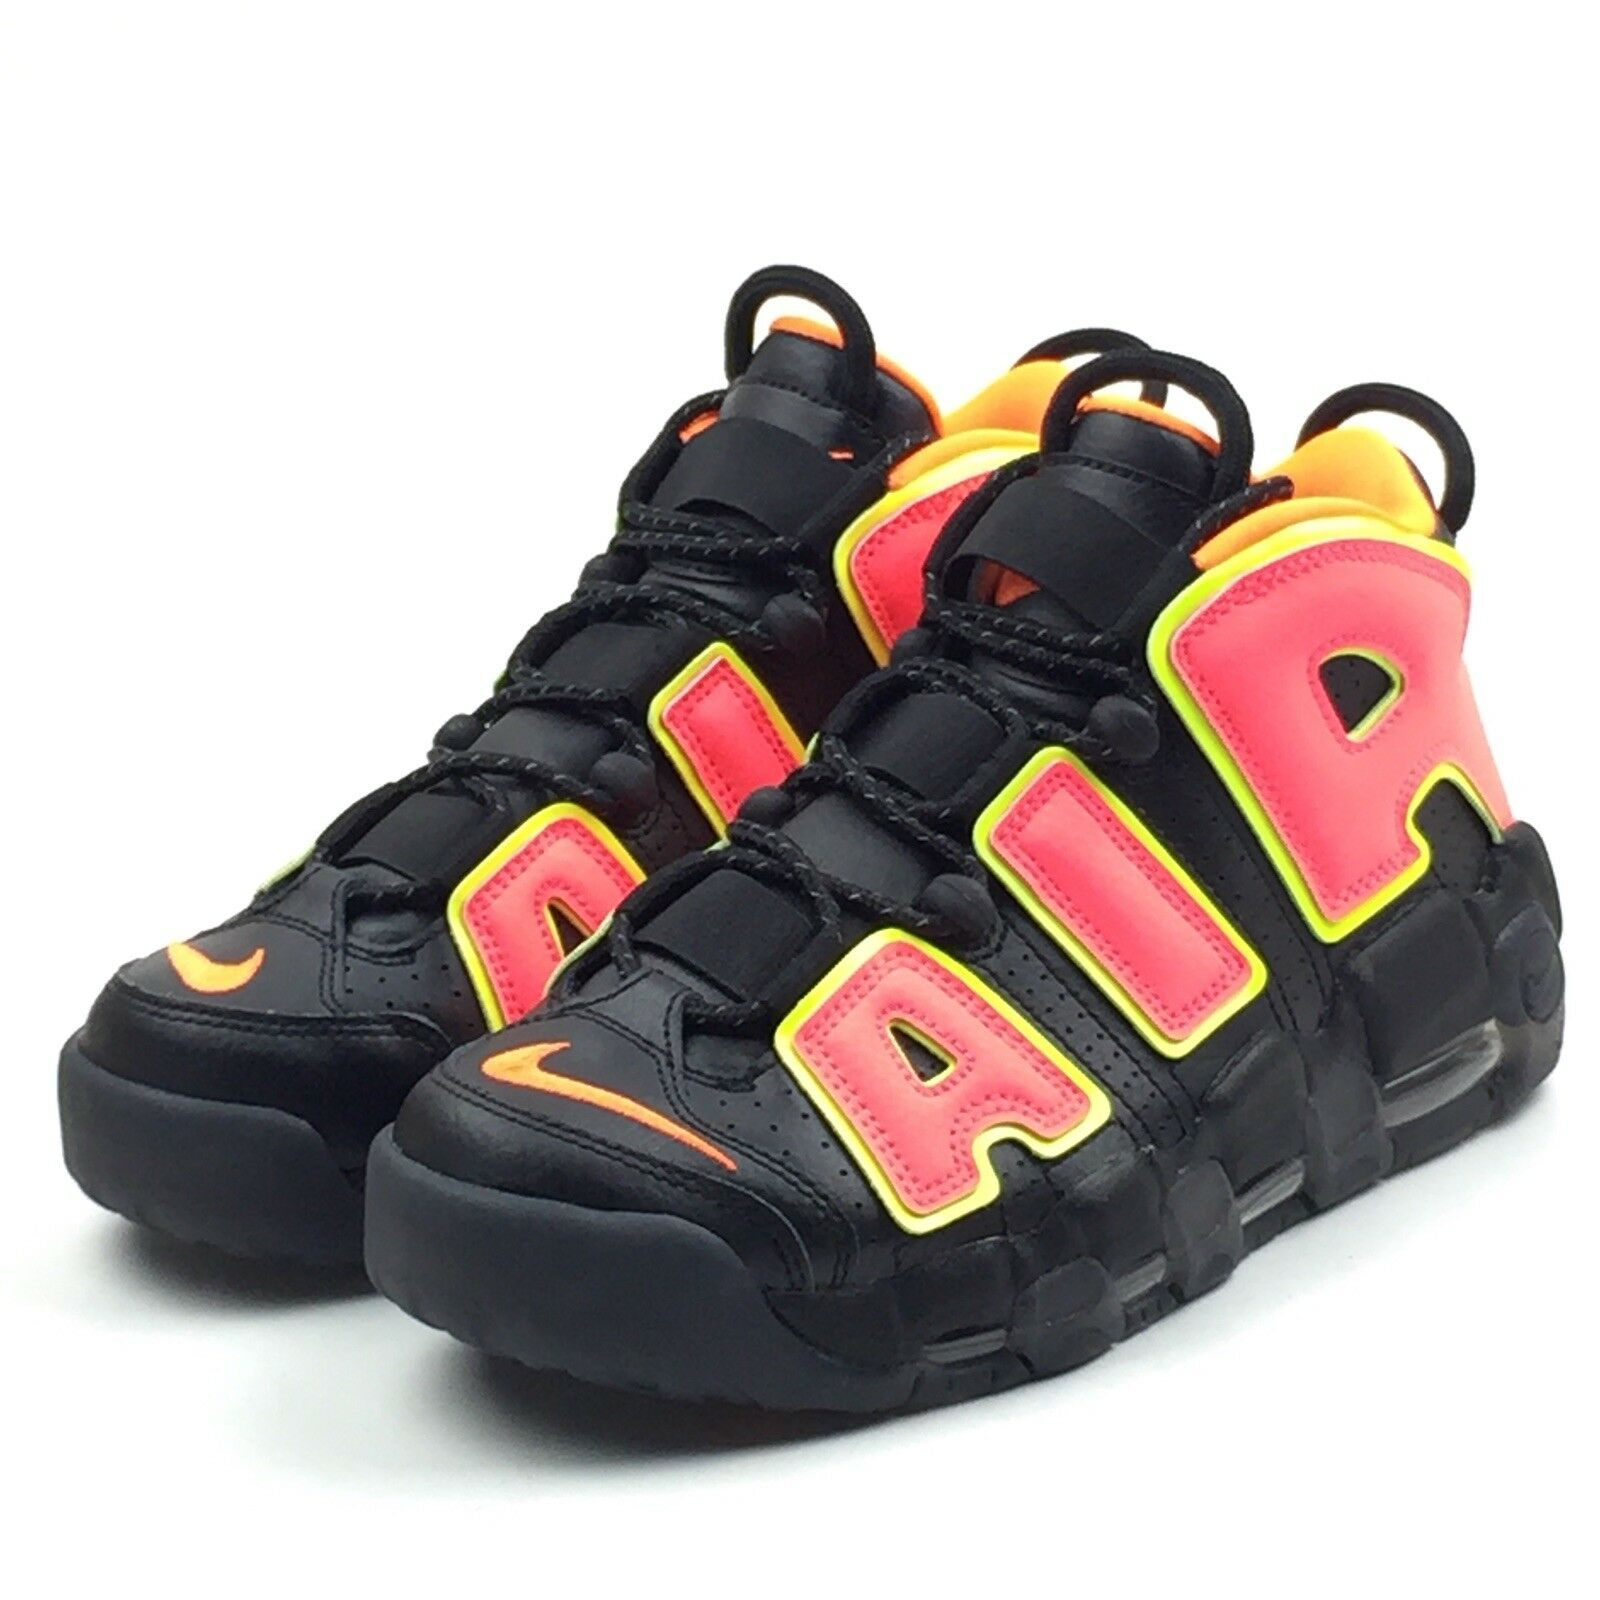 Nike Air More Uptempo Womens Black Hot Punch Volt Pippen Size 8.5 917593-002 New